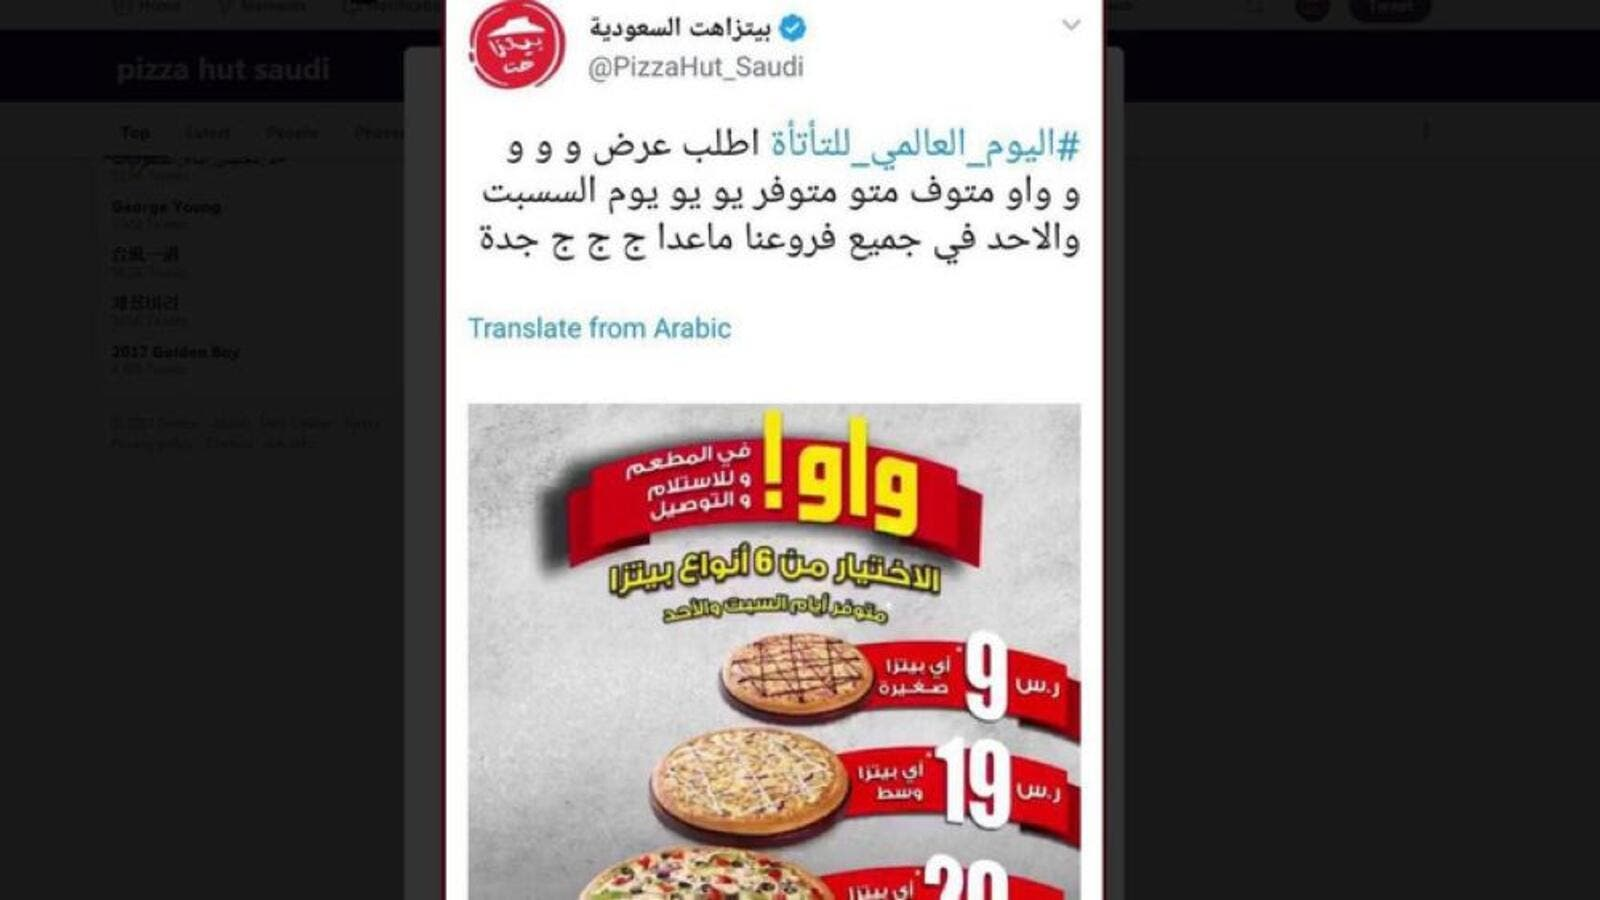 The ad was shortly yanked by the company that apologized for the blunder amid people's demands to boycott the food chain (Twitter)